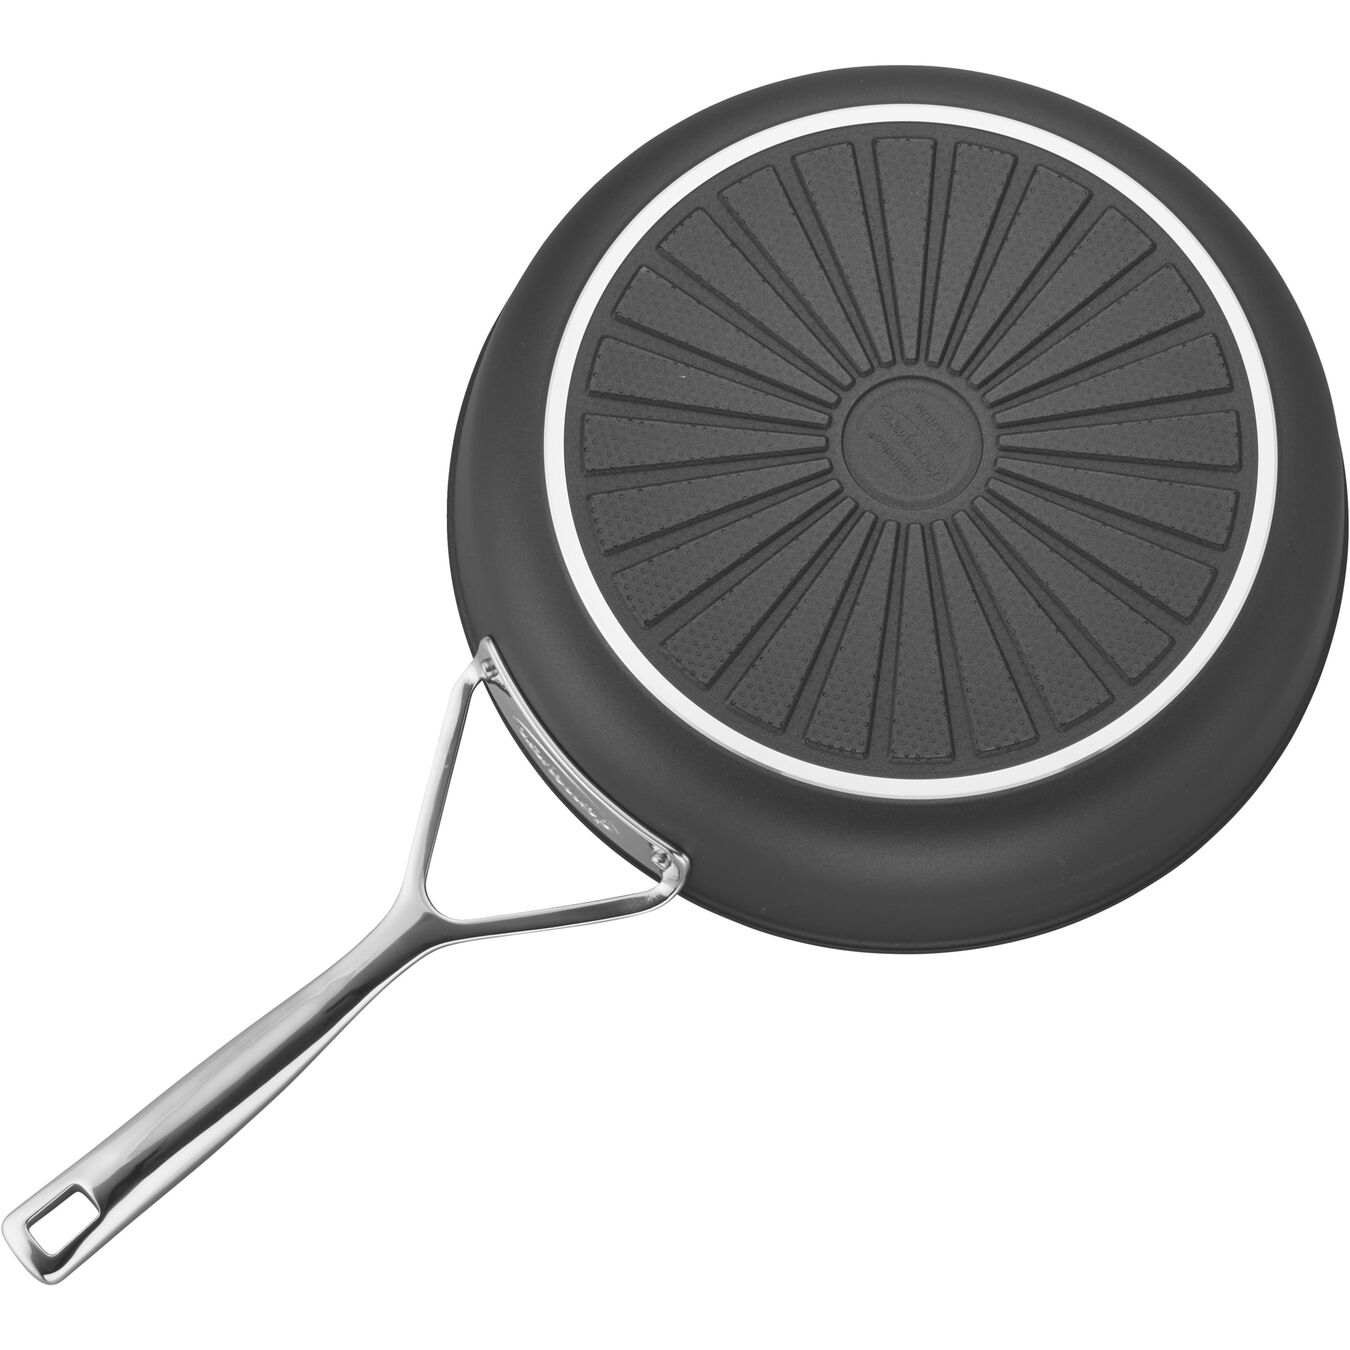 28 cm / 11 inch Aluminum Frying pan high-sided,,large 4